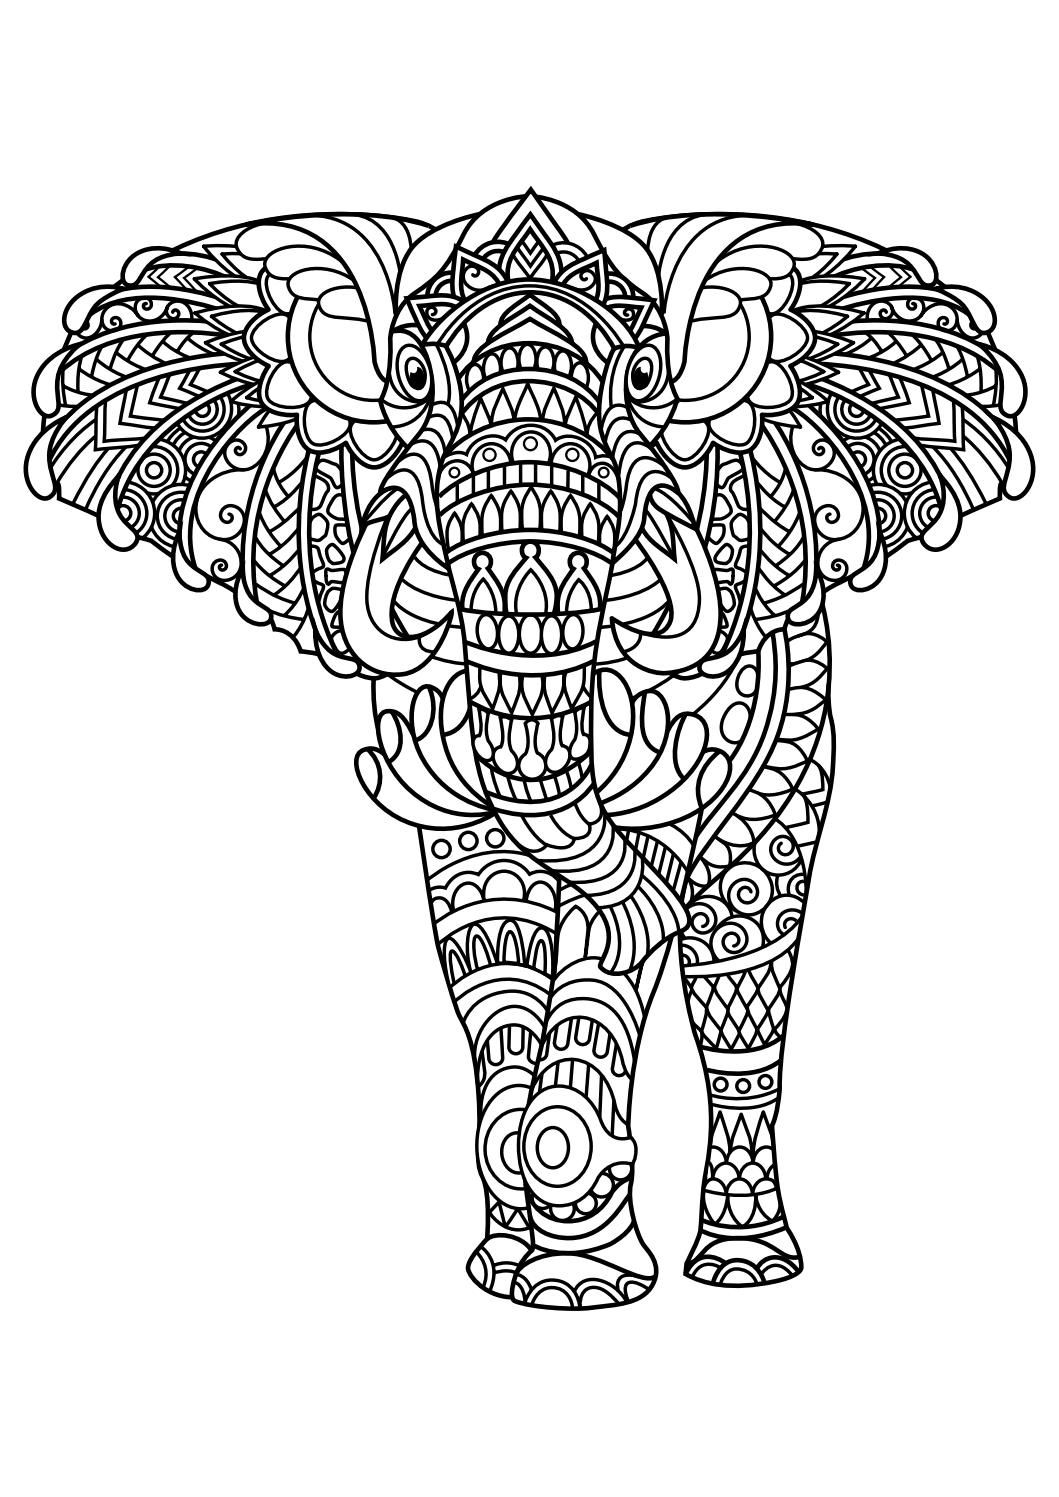 animal coloring pages pdf coloring animals elephant coloring page adult coloring pages. Black Bedroom Furniture Sets. Home Design Ideas